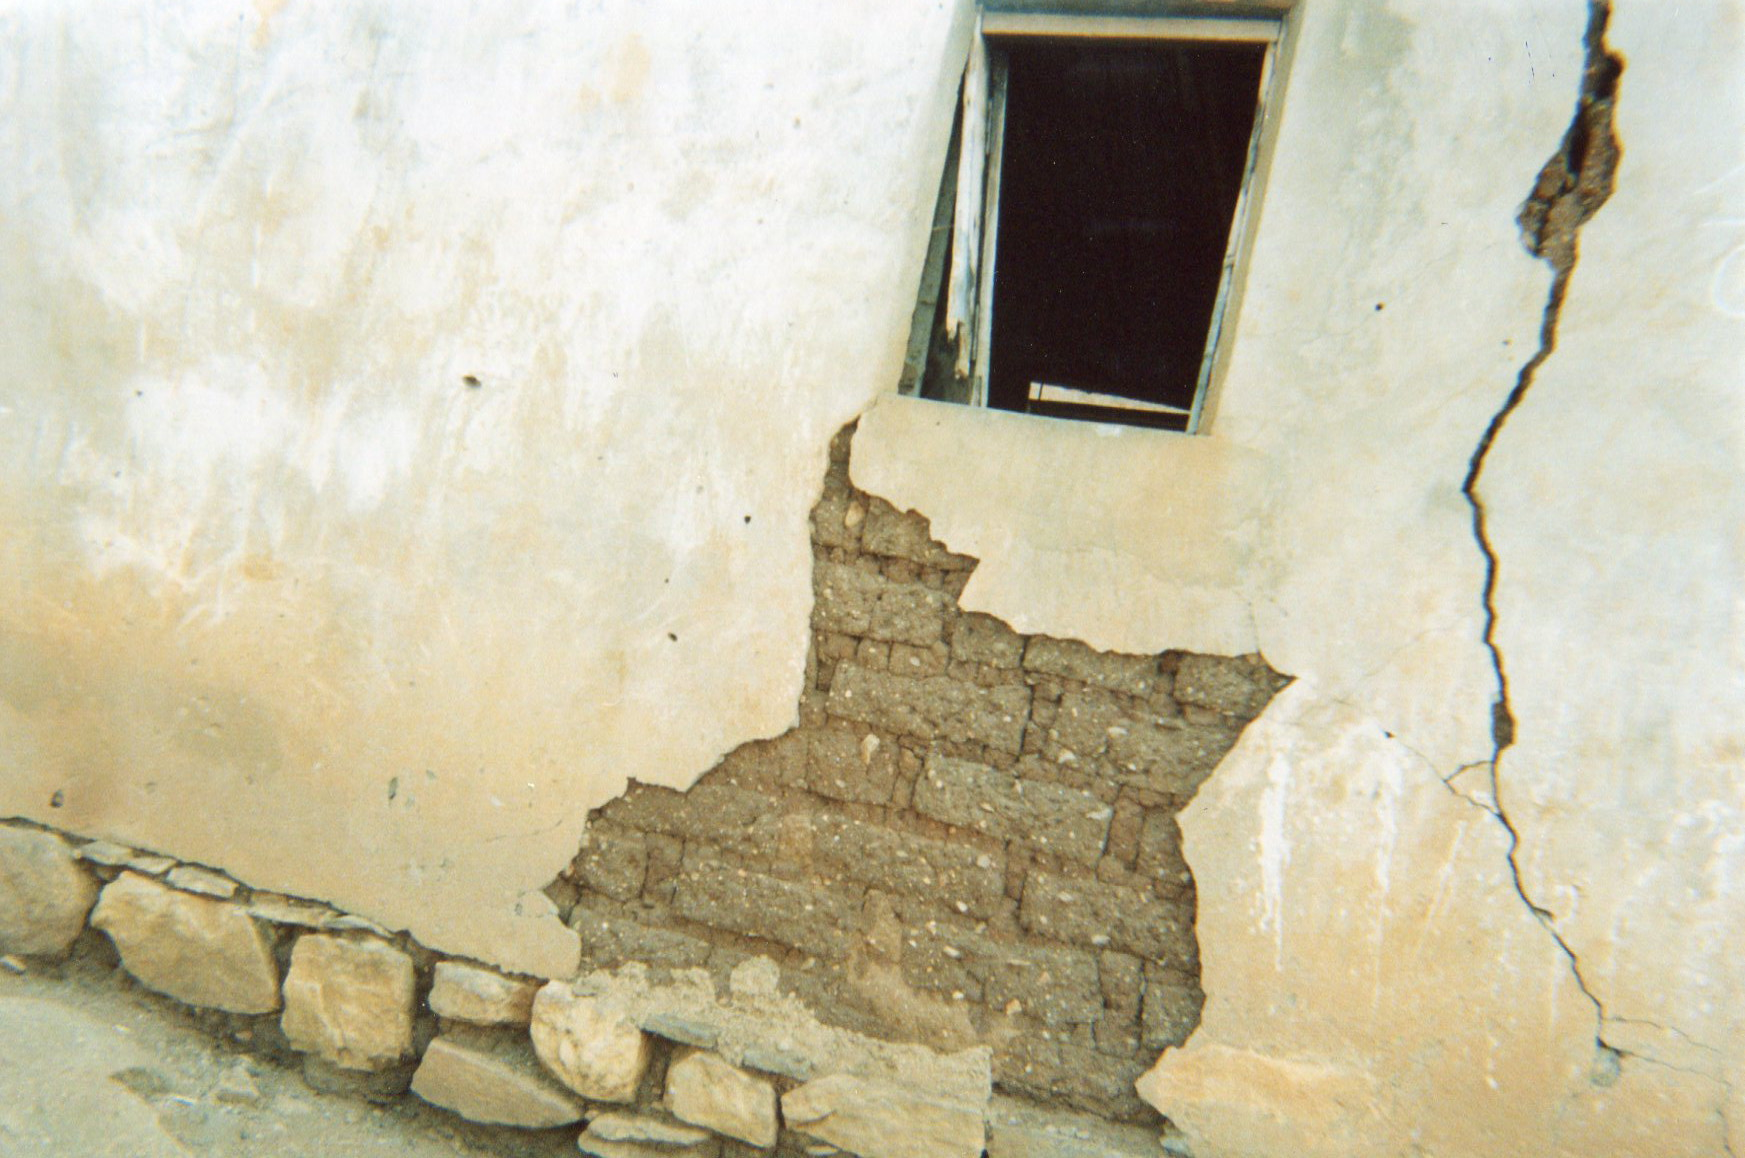 This picture shows the cracks in the walls of my house — this house is a danger for the whole family.